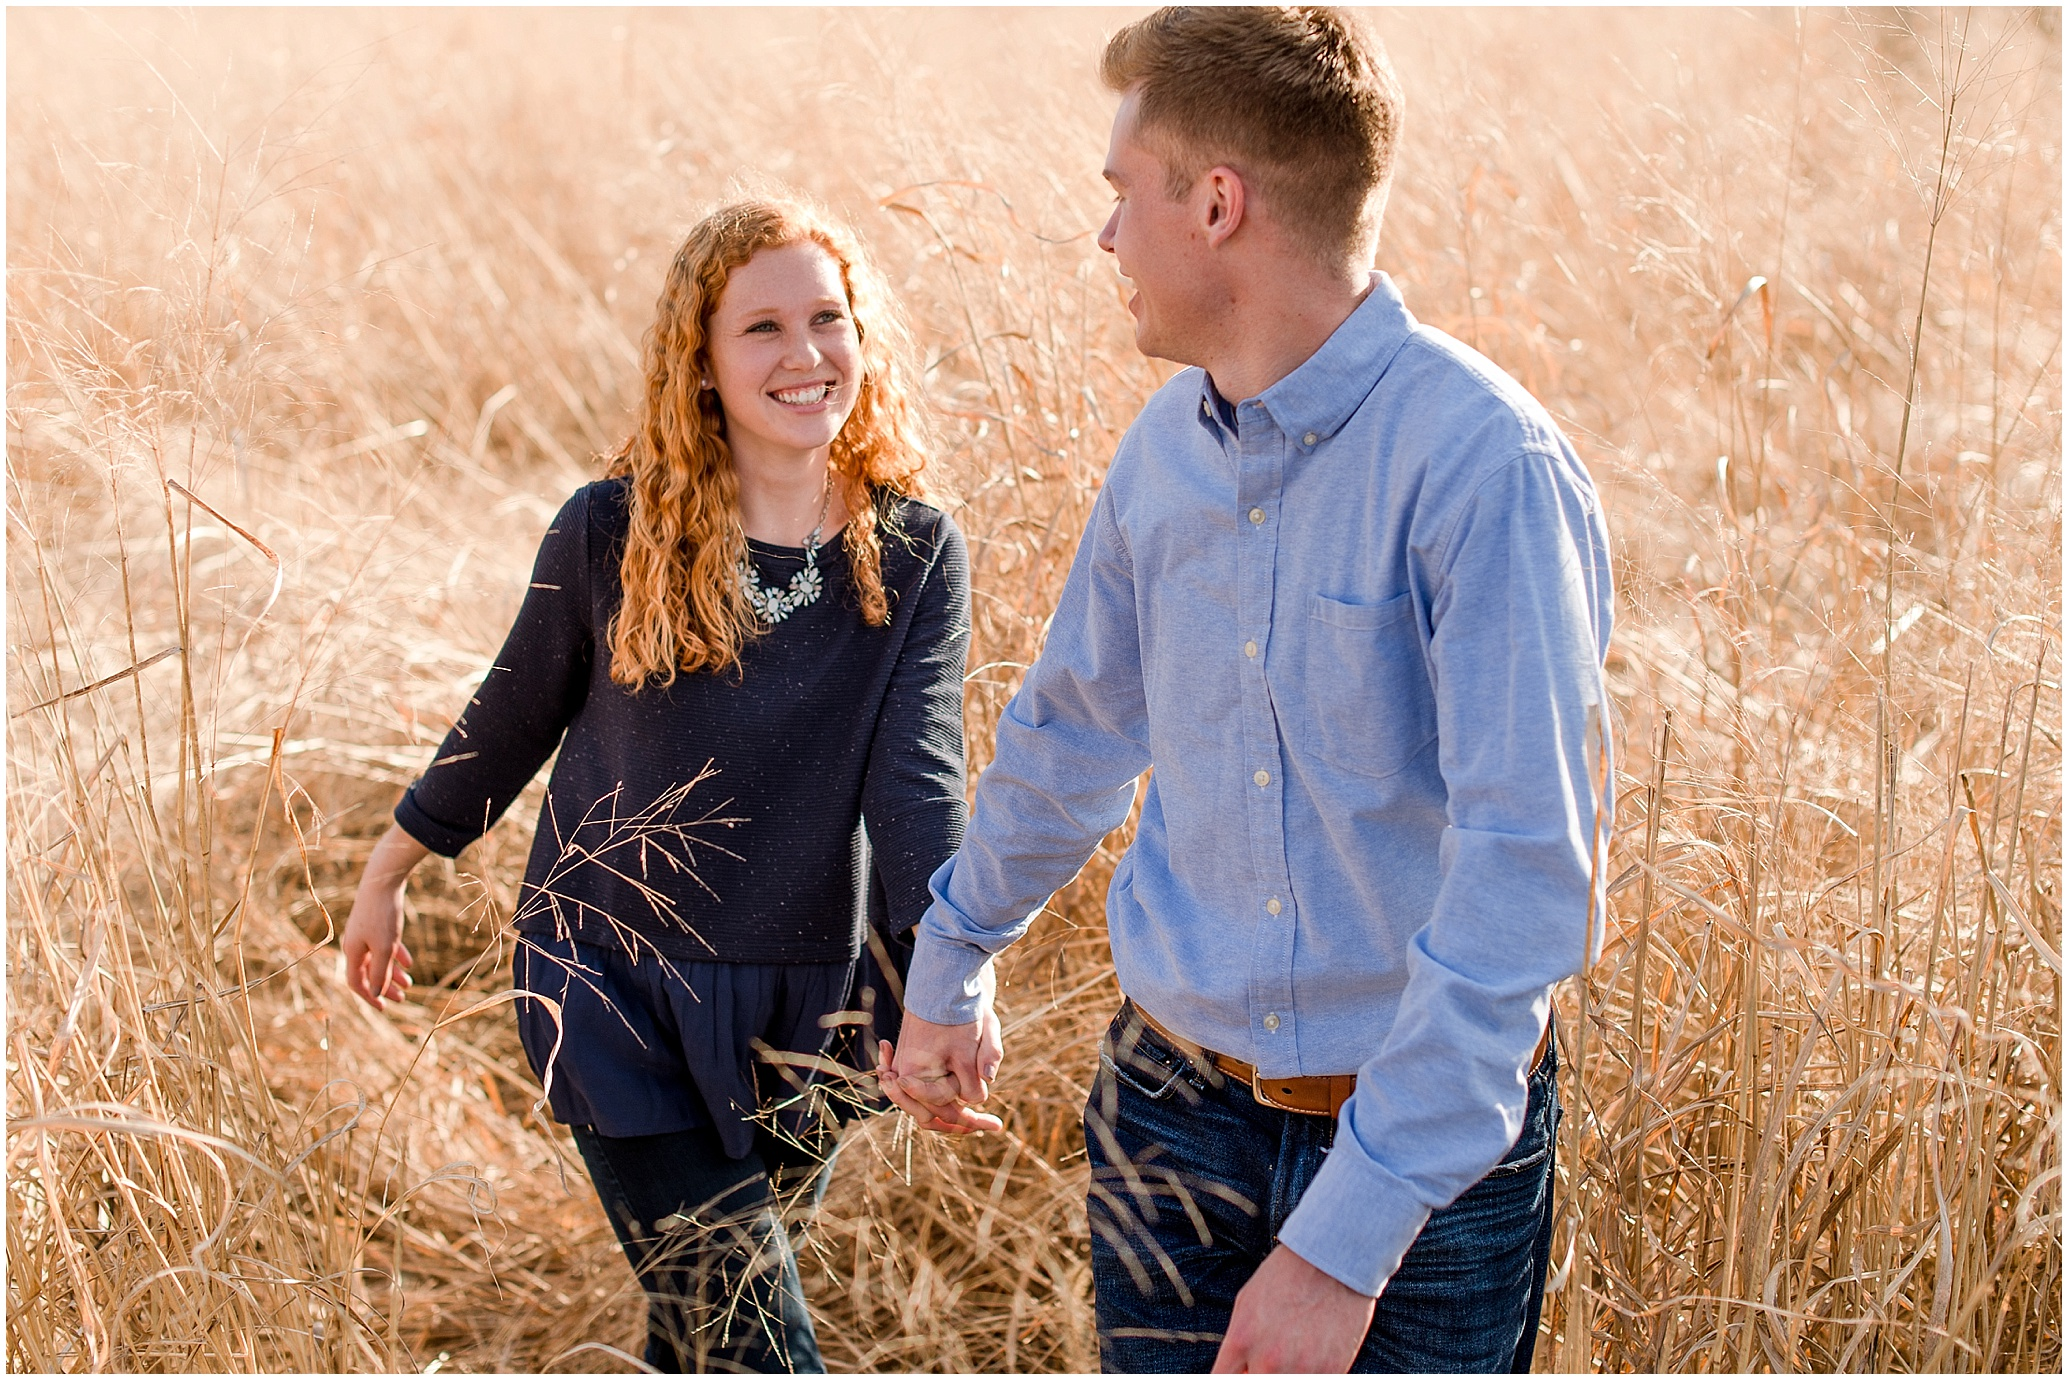 Hannah Leigh Photography State College, PA Engagement Session_3318.jpg